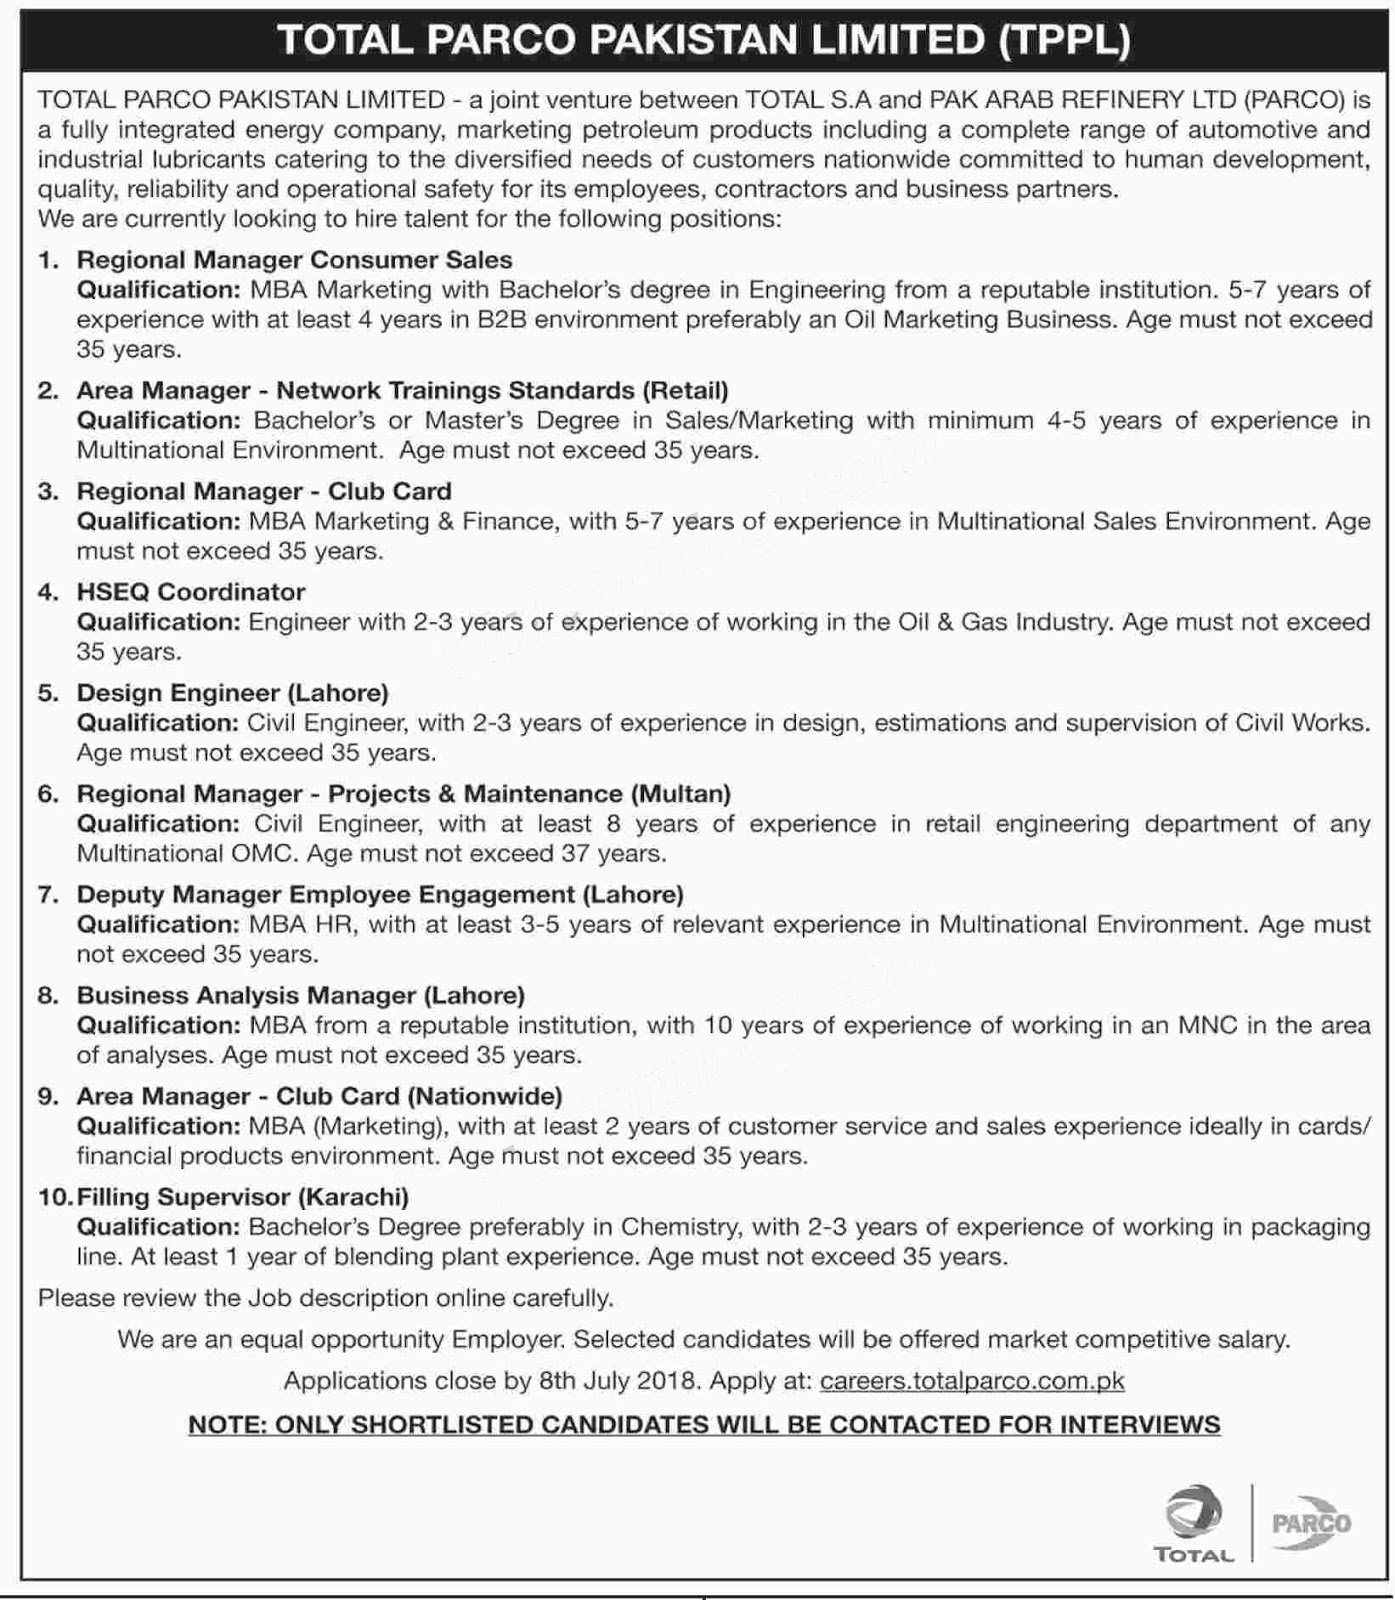 Jobs In Oil and Gas Company Total Parco Pakistan Limited July 2018